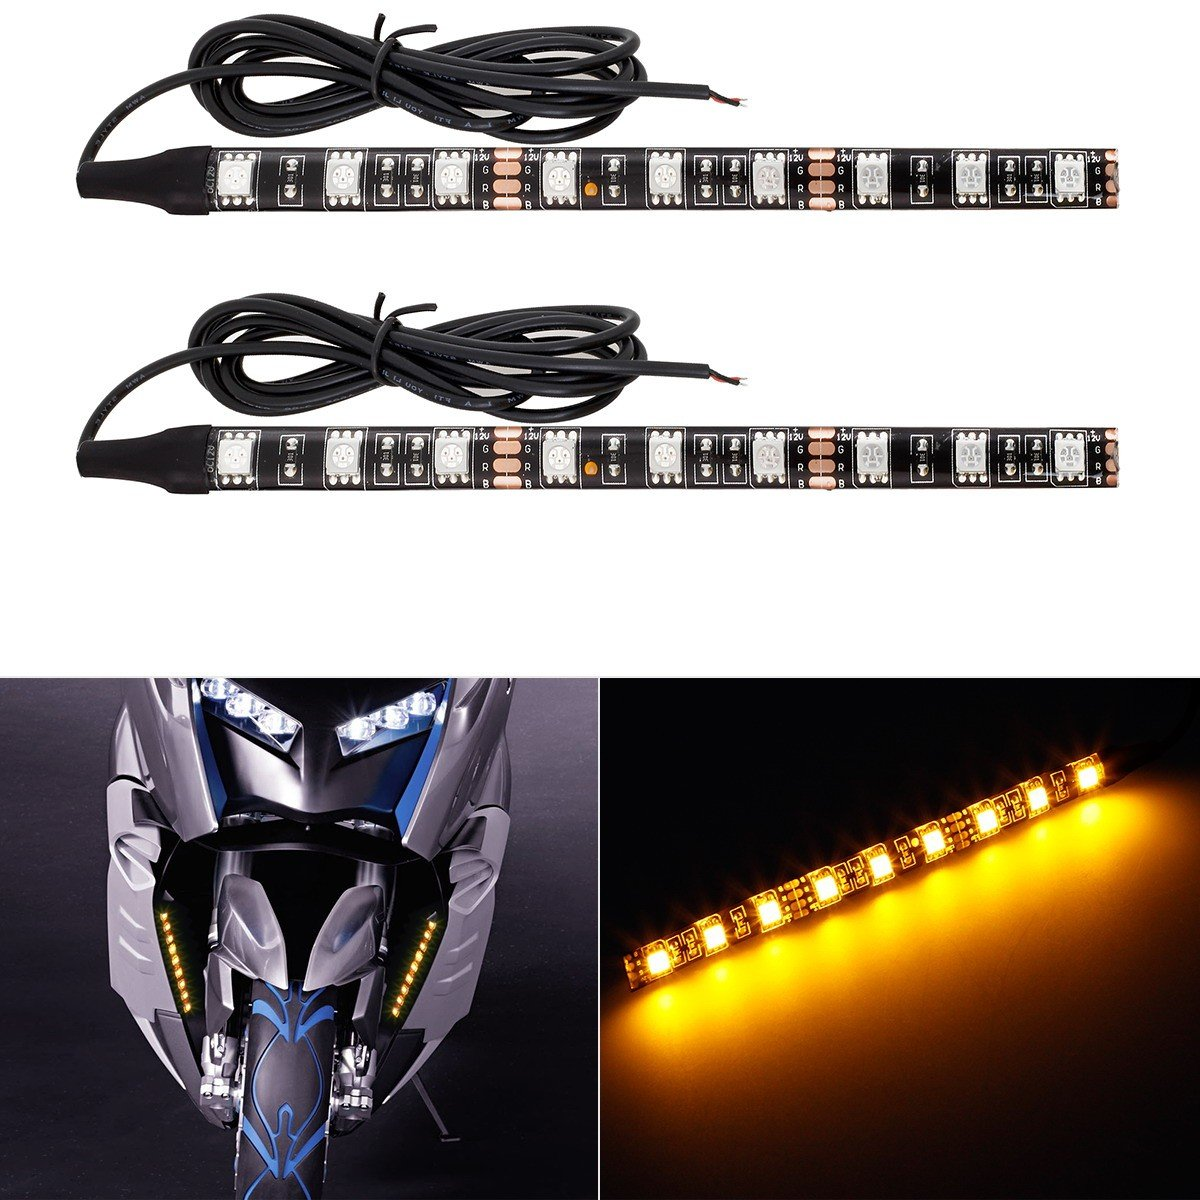 Partsam Universal LED Strip for Motorcycle License Plate Tail Brake Stop Turn Signal Light Strip 32LED 8' Flexible Third Brake Light for Motorbikes Harley Davidson ATV Scooters